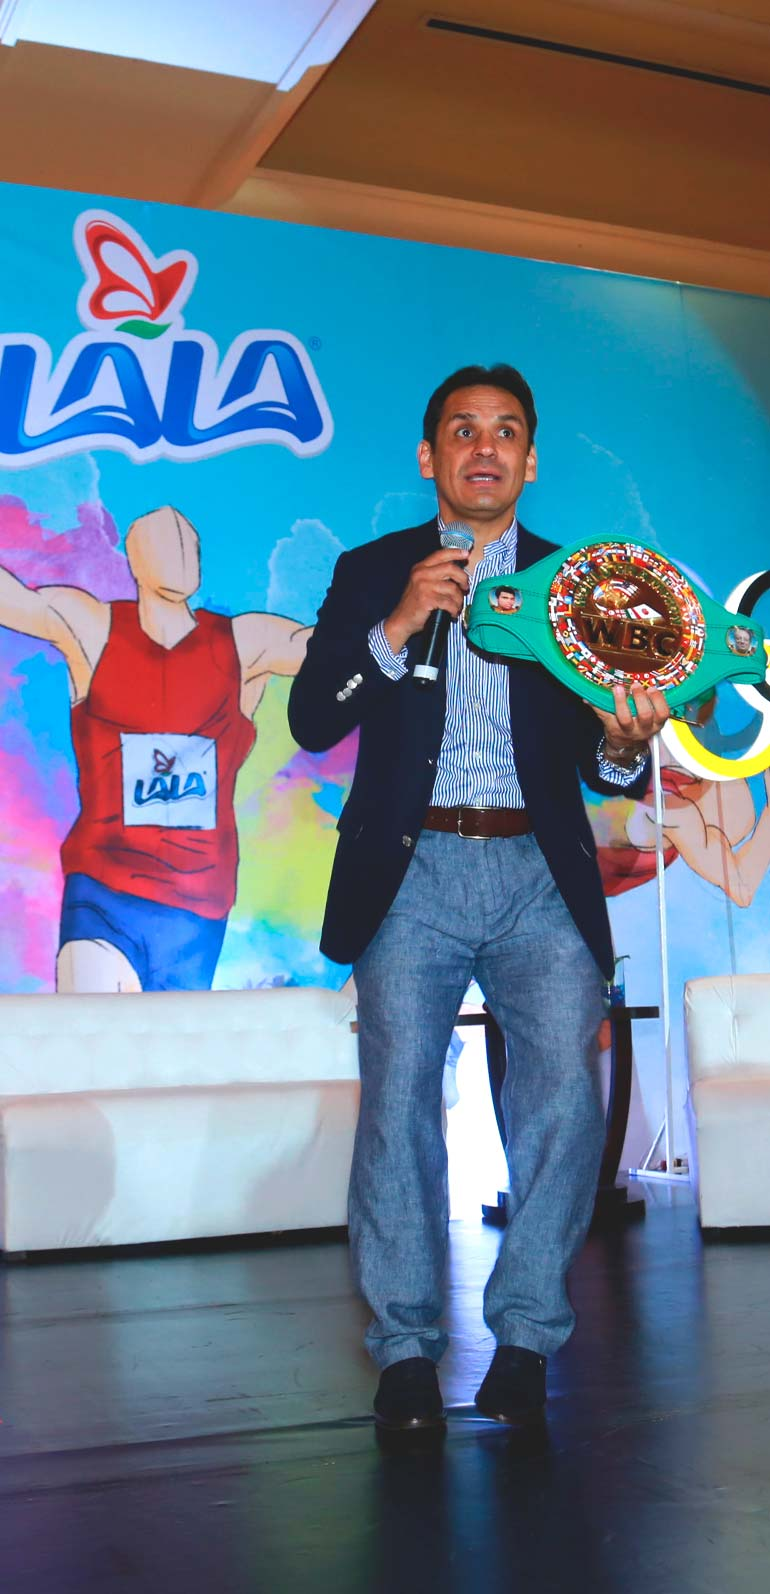 SATmexico dmc meetings conventions acapulco box champion LALA